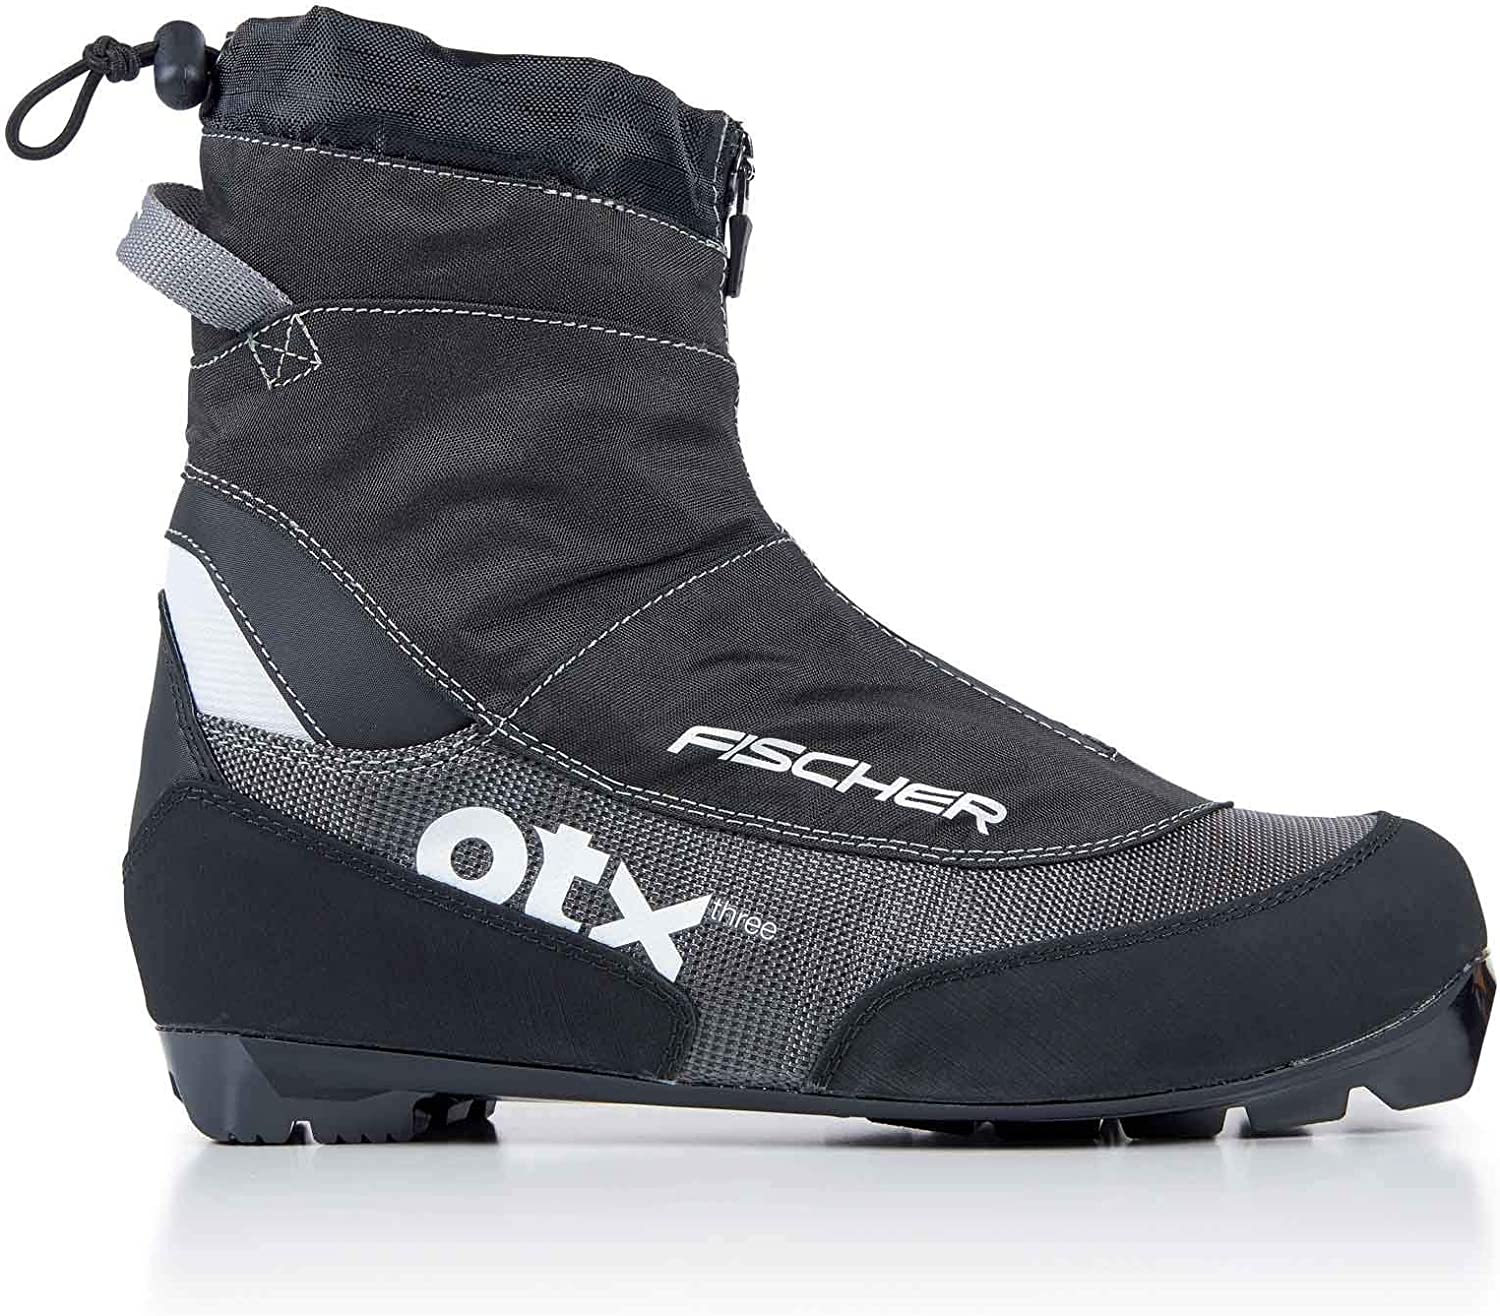 Translated Fischer Offtrack 3 XC Max 43% OFF Boots Silver Black 18-13.5 - 17